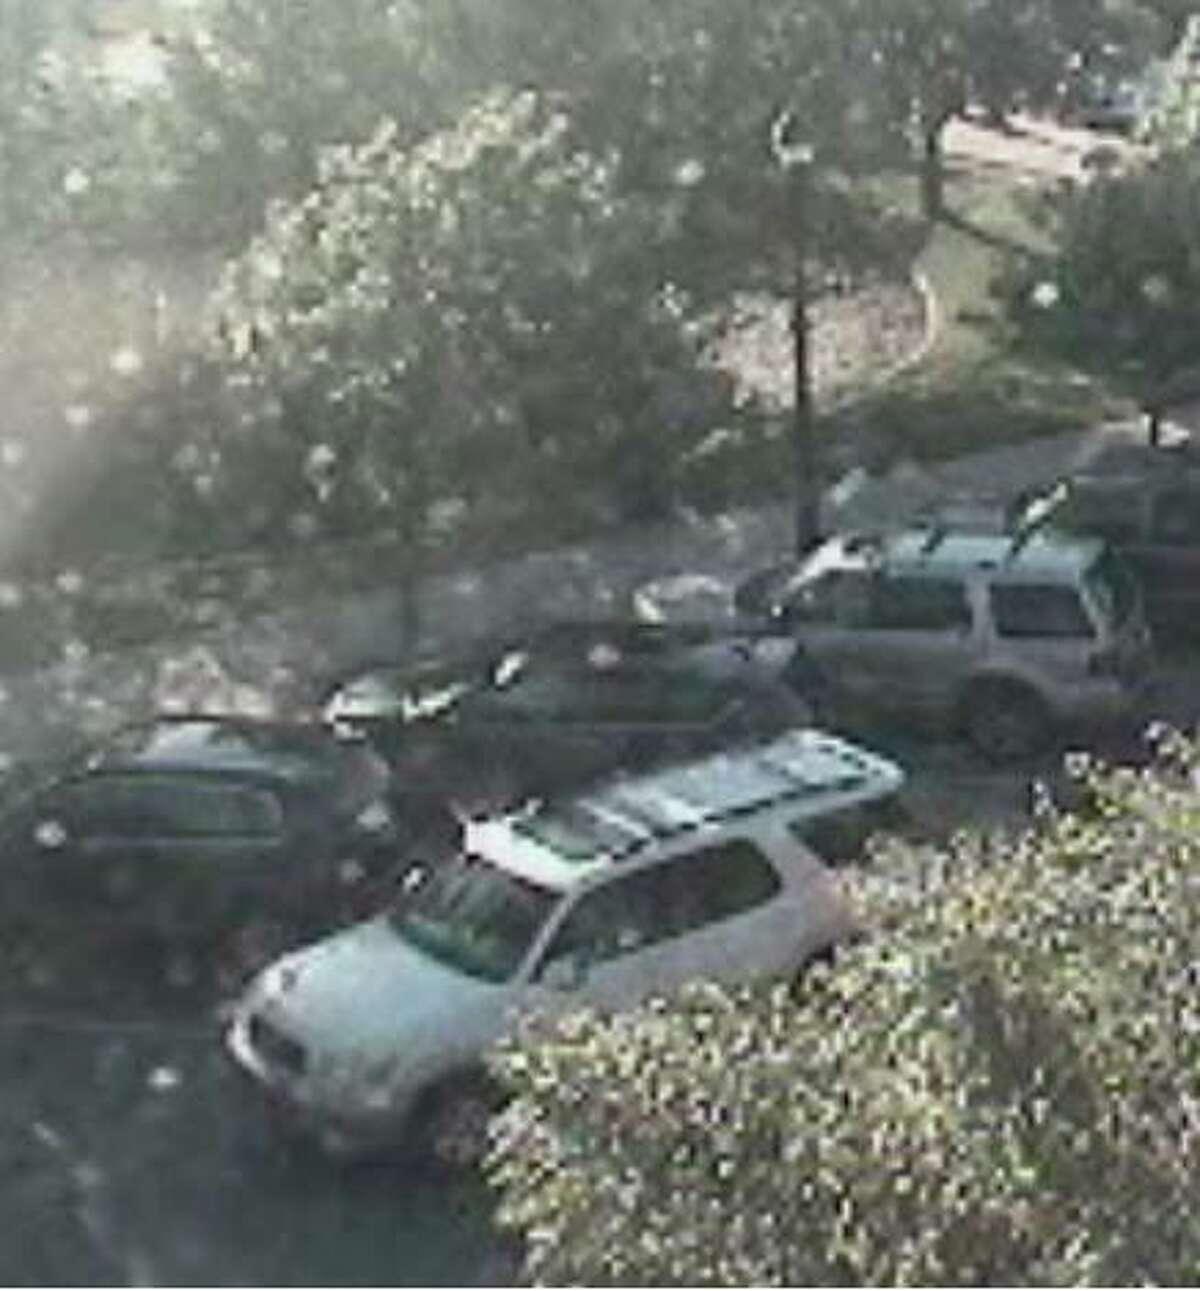 Surveillance footage provided by the Southlake Police Department shows a white SUV purportedly driven by suspects who carried out the killing of Juan Jesus Guerrero Chapa - a former lawyer for Osiel Cárdenas Guillén, leader of the Gulf Cartel and Los Zetas - in May 2013 while he and his wife were out shopping in Southlake.